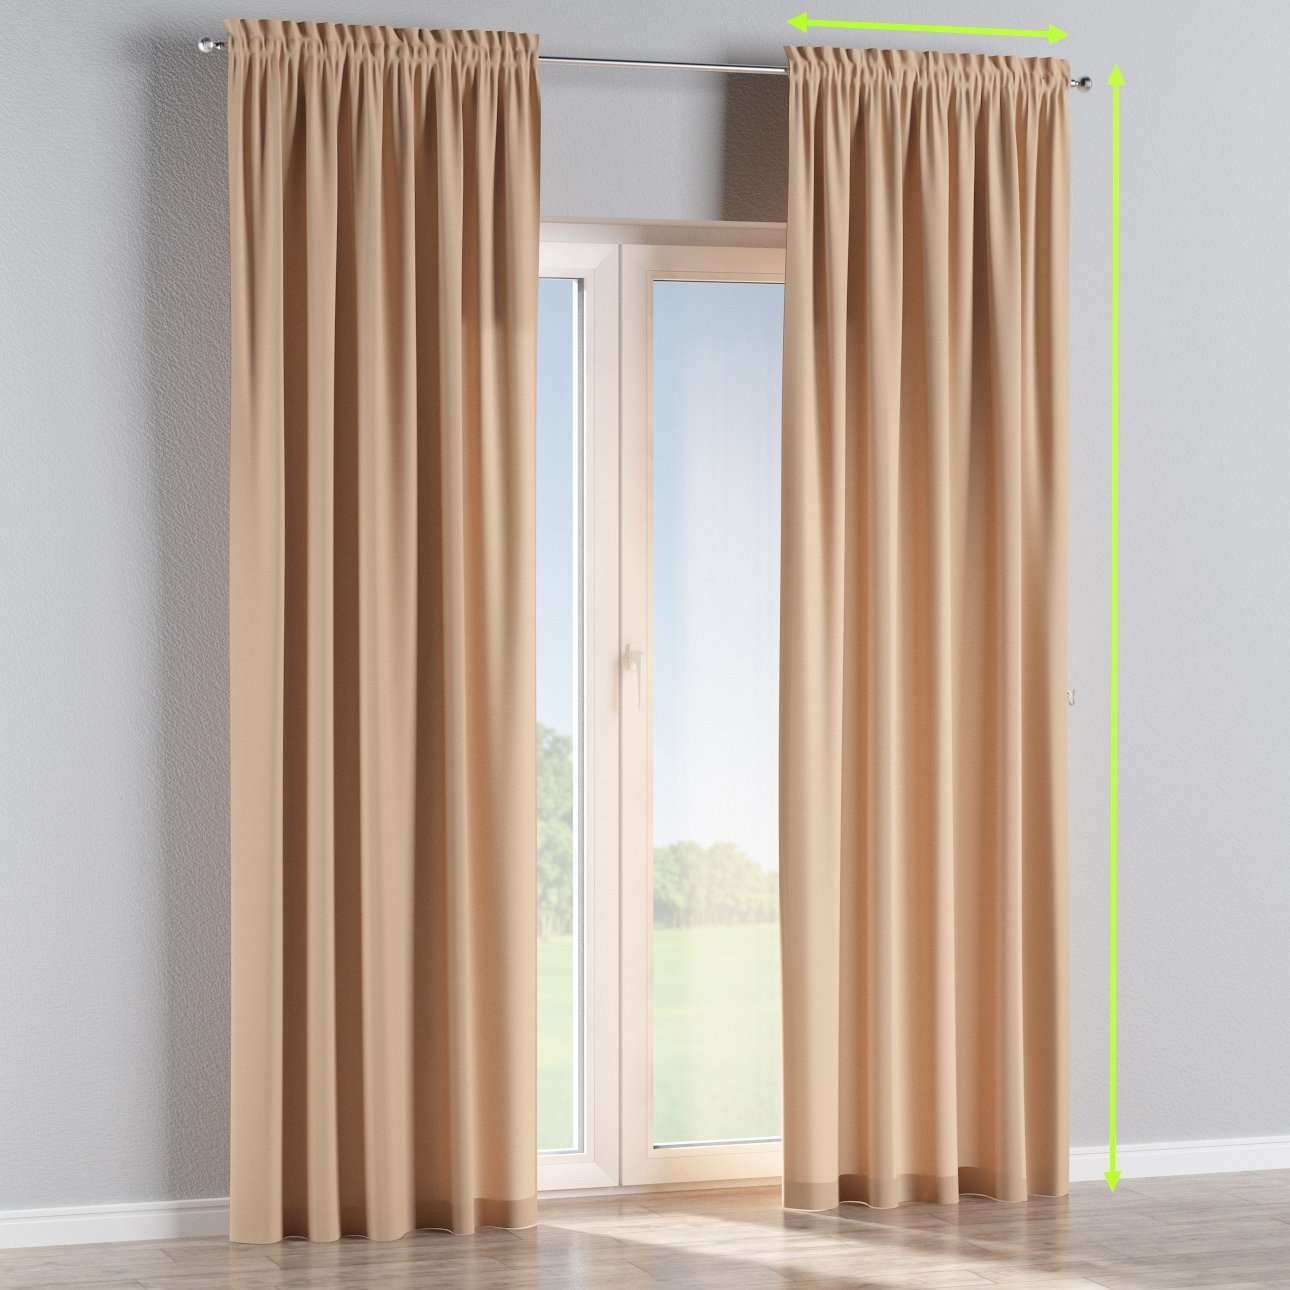 Slot and frill lined curtains in collection Cotton Panama, fabric: 702-01